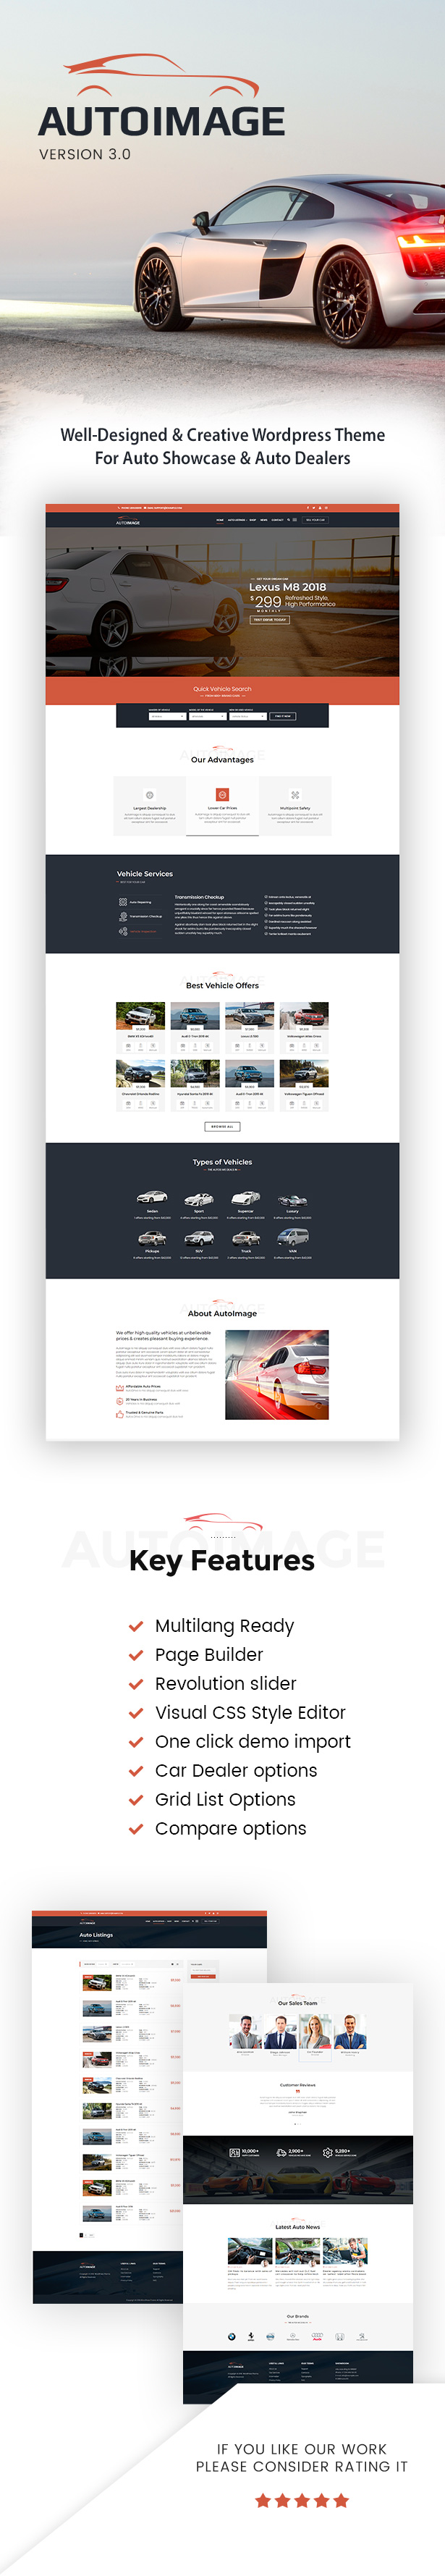 Autoimage - Automotive Car dealer image